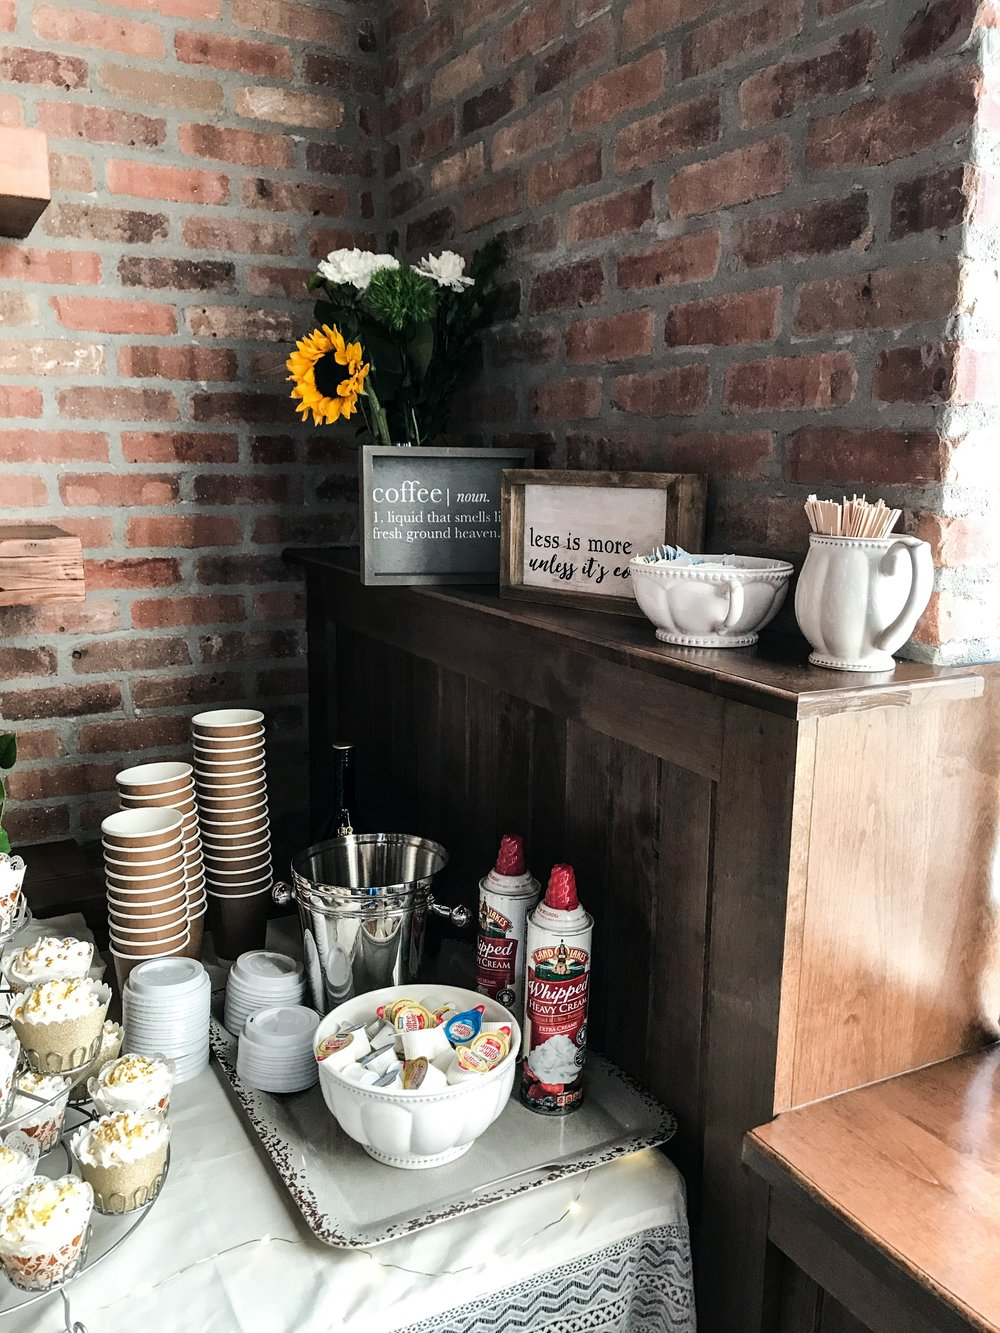 Coffee Bar Decor Idea For A Wedding. DIY Donut Wall Dessert Table For A Wedding Or Shower.